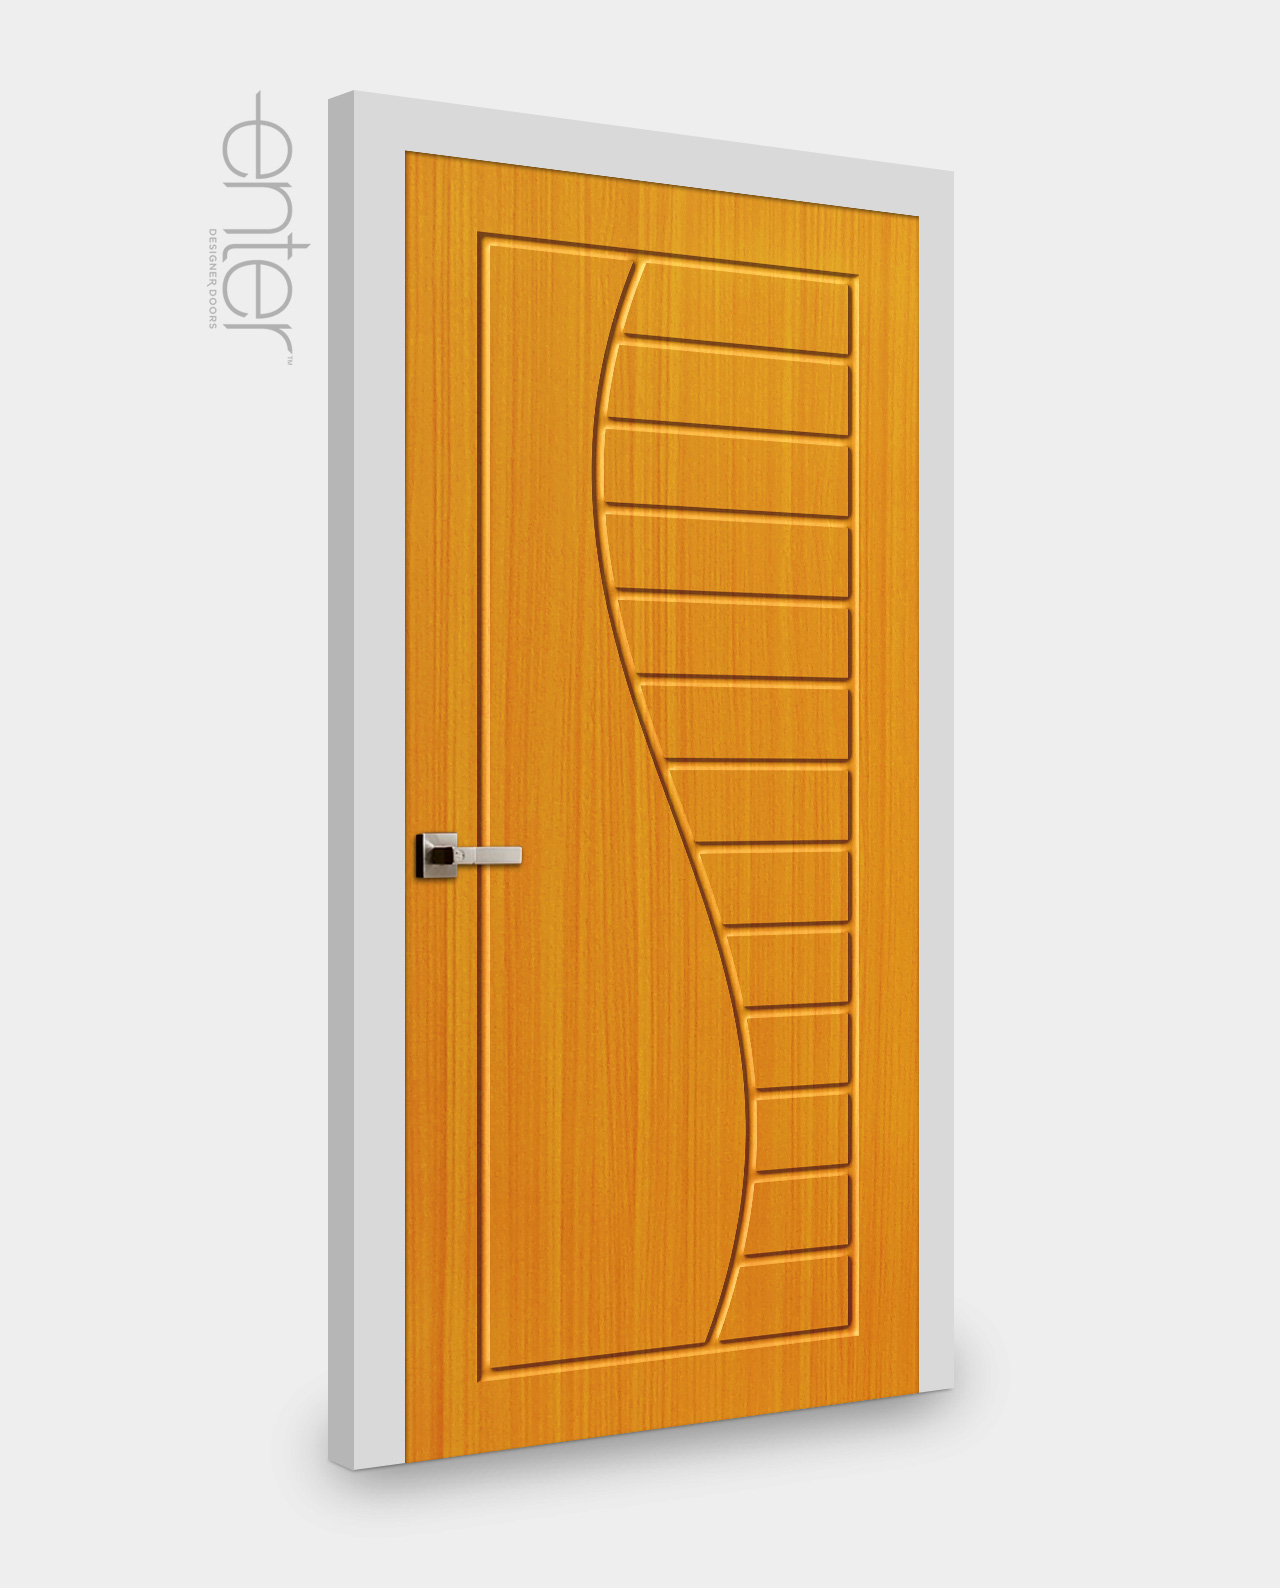 laminated doors in jaipur membrane door manufacturer in rajasthan laminated door manufacturer door  sc 1 st  JJ Craft & CLS06 u2013 Classic Membrane Door u2013 JJ Craft